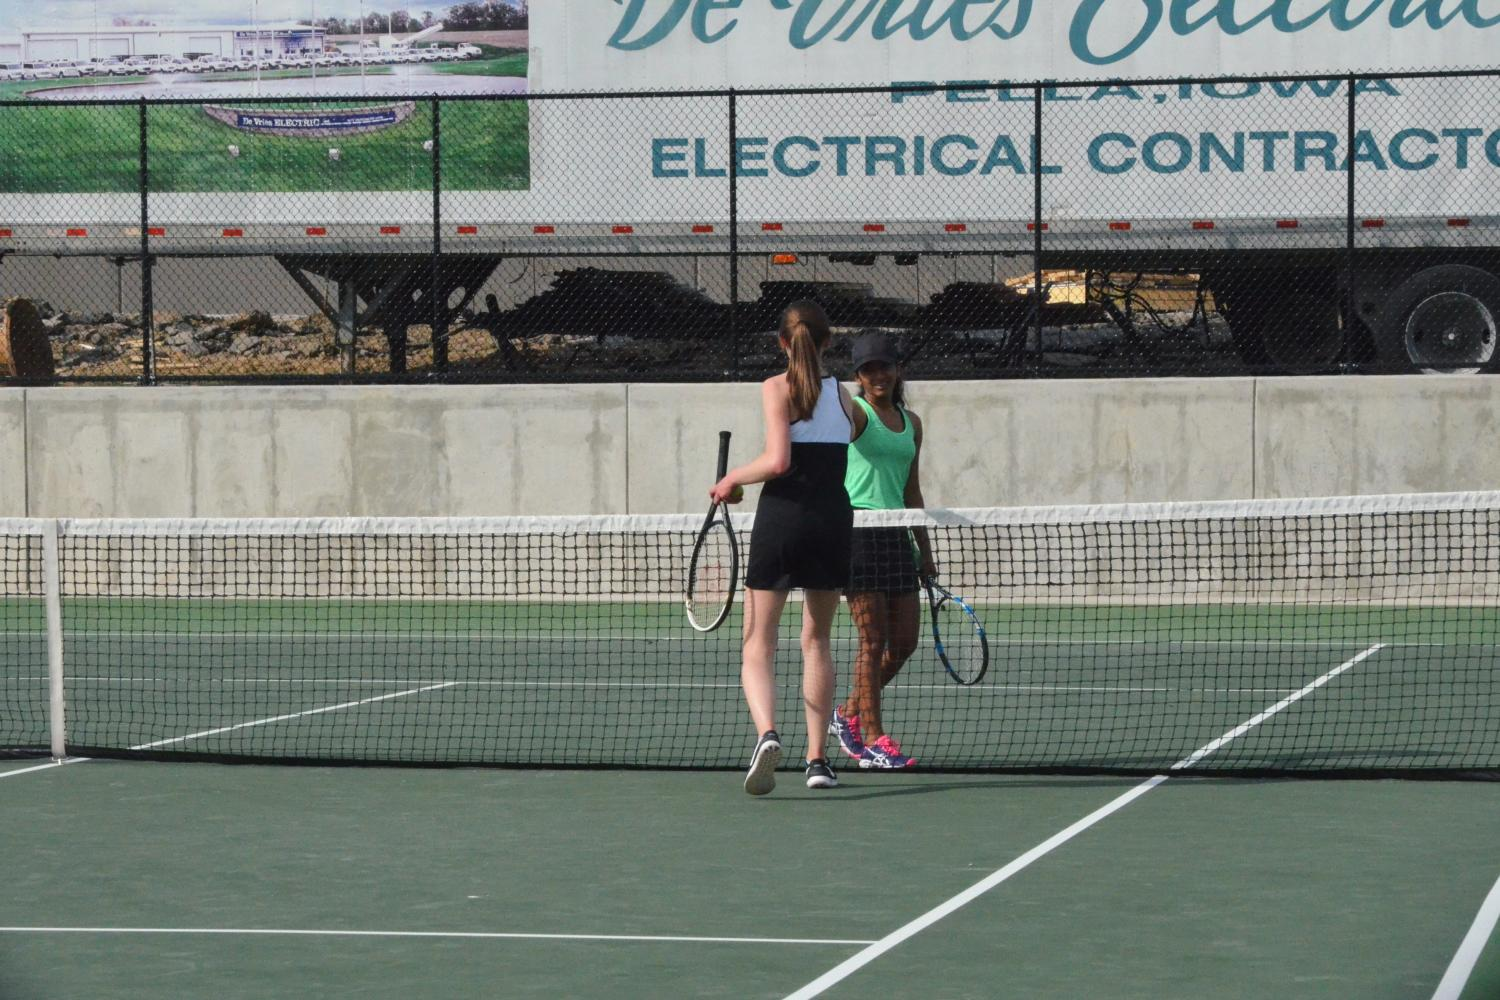 Jessica Moonjely '20 shakes hands with her opponent, after winning her singles match.